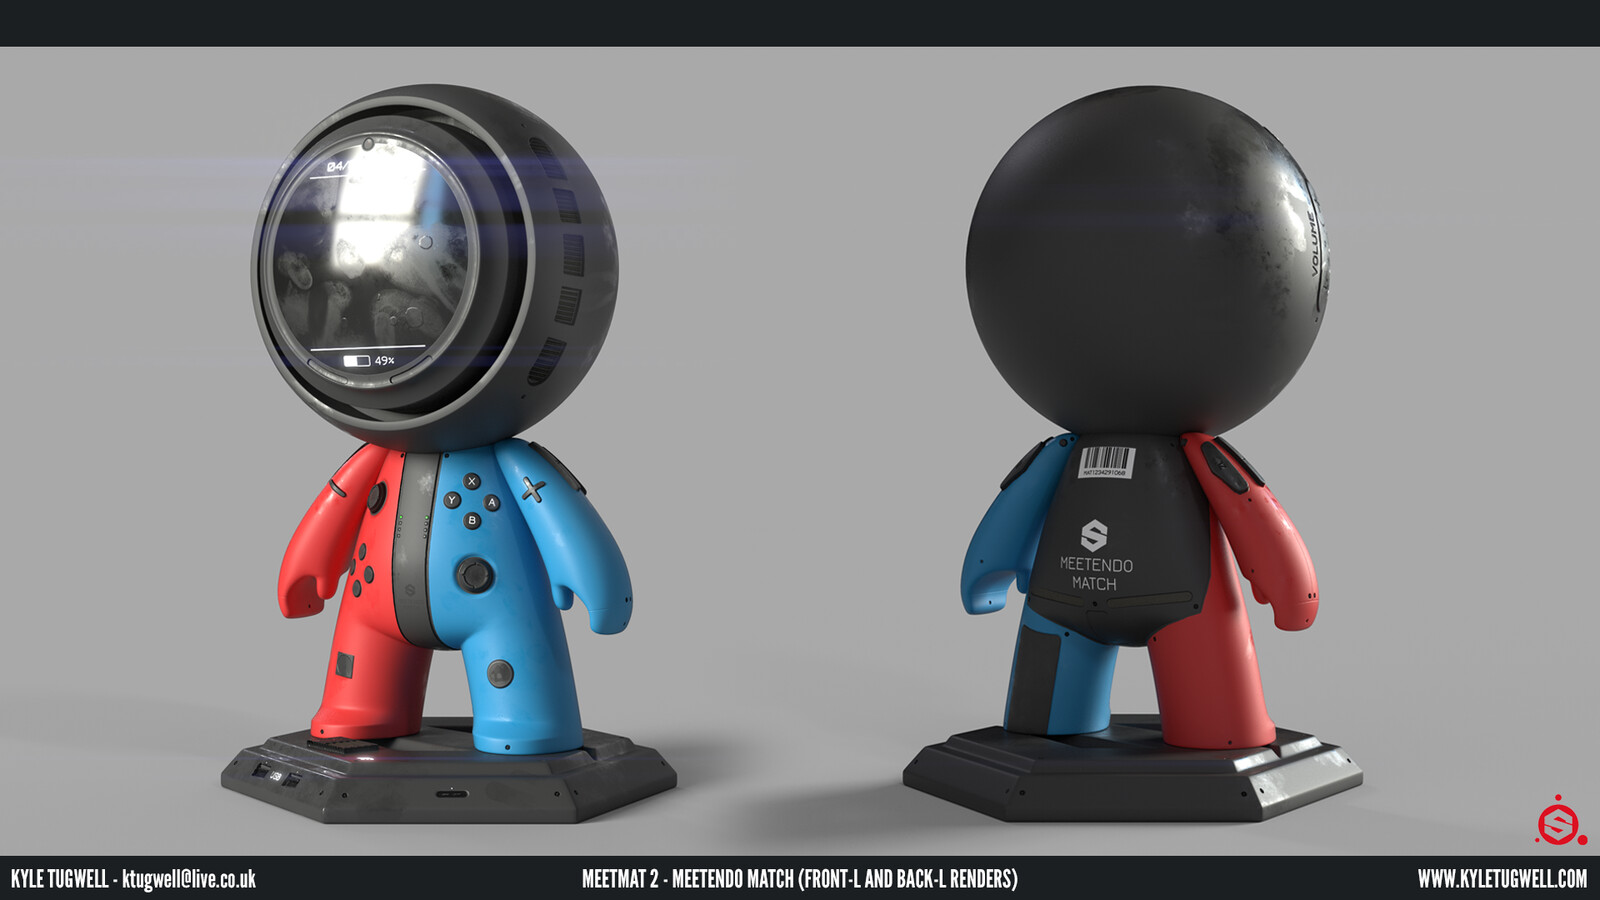 A front and back angled render; with these you can see the details in the displacement, normals and roughness easily.